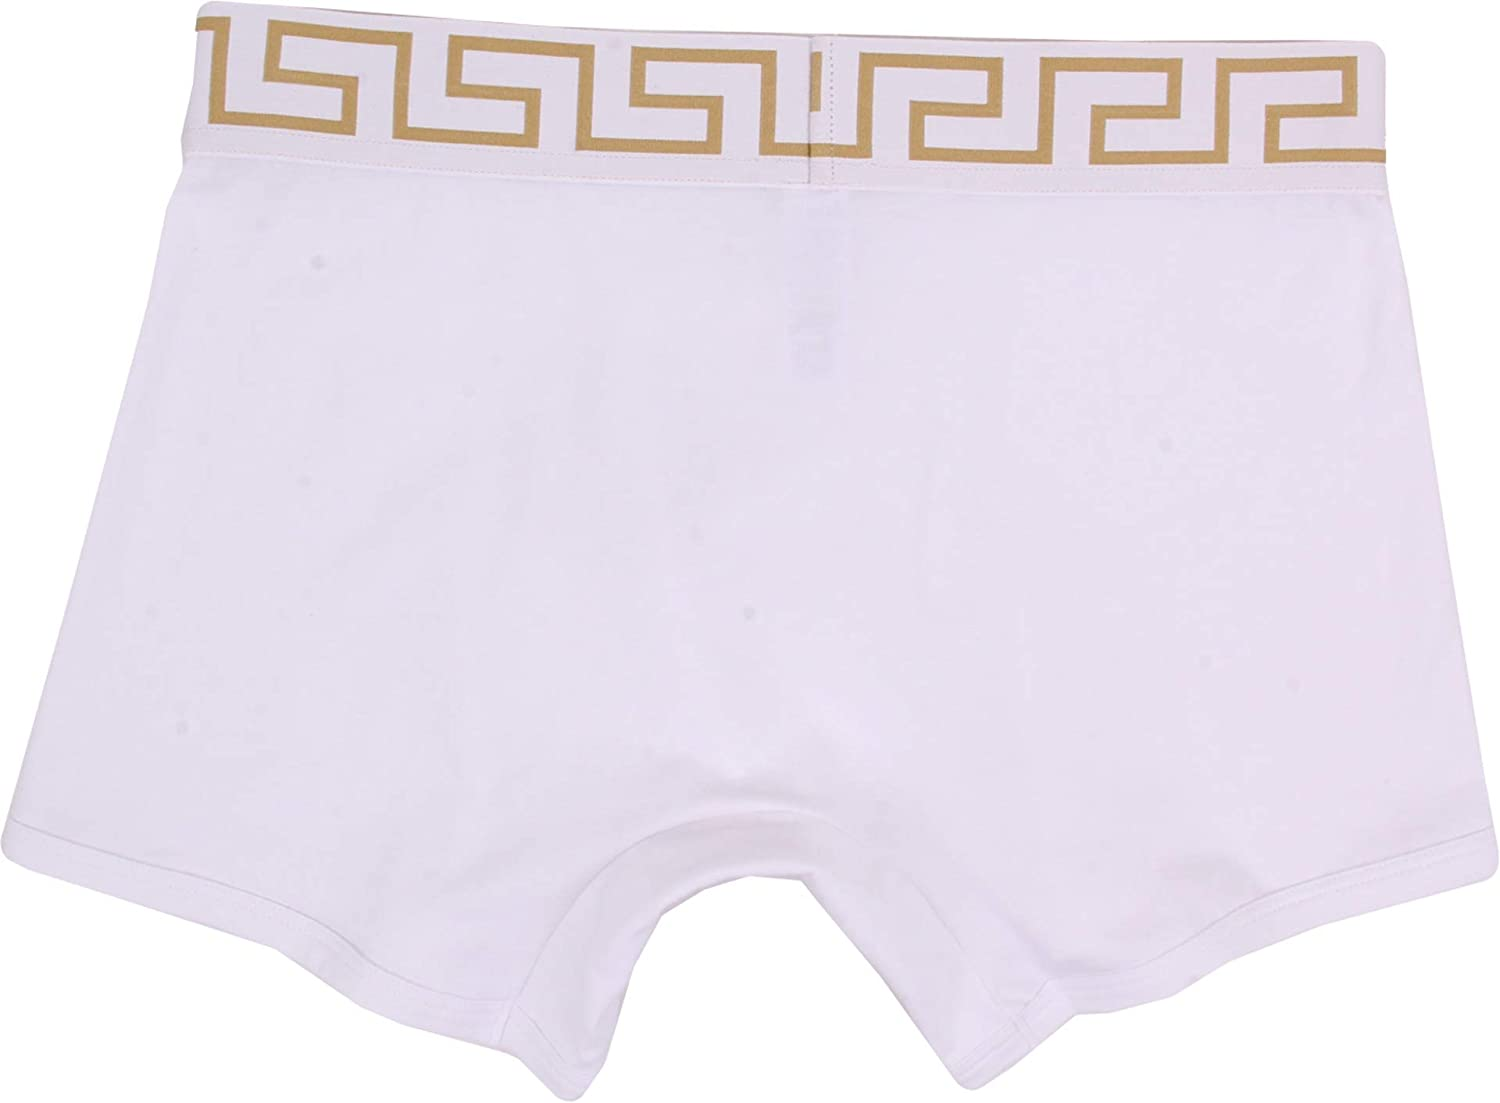 Versace 3-Pack Iconic Low-Rise Men/'s Briefs White//gold